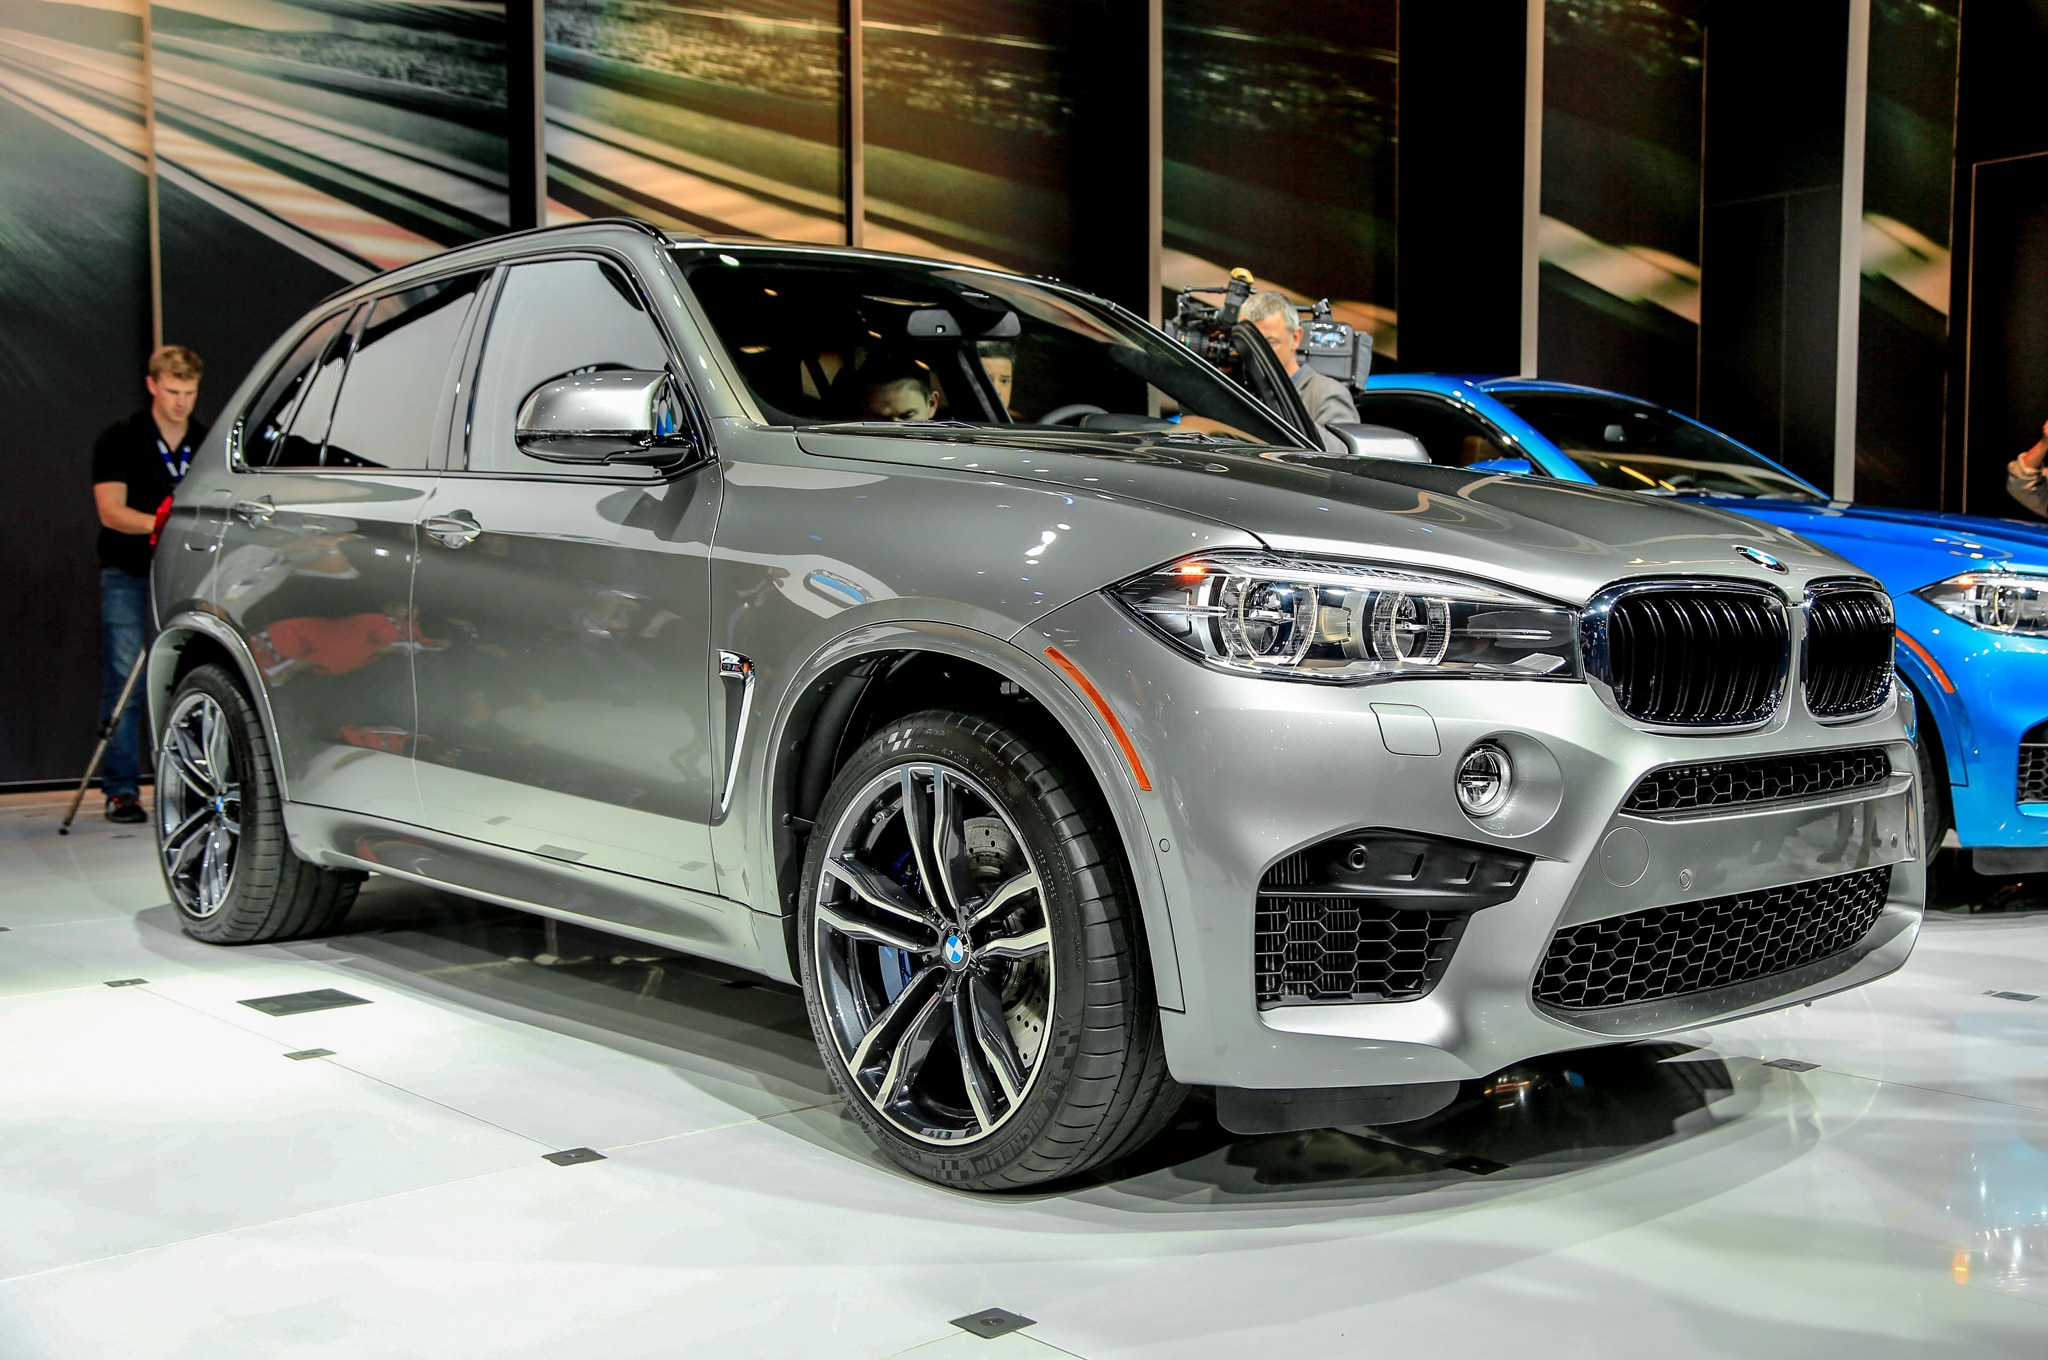 2015 bmw x5 m and x6 m revealed slated for 2014 los angeles show. Black Bedroom Furniture Sets. Home Design Ideas